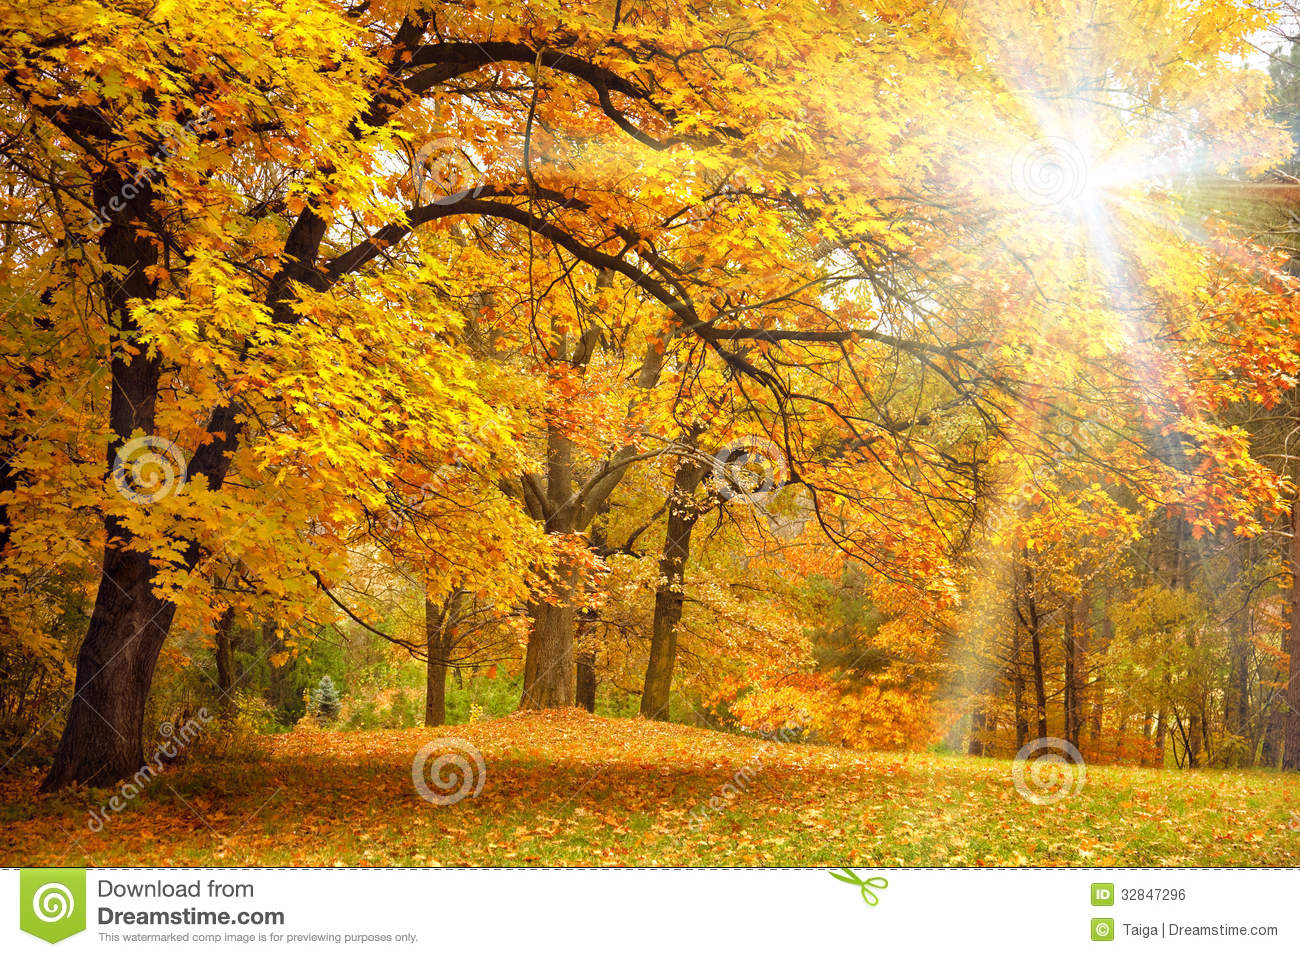 Fall Leaves Pathway Computer Wallpaper Gold Autumn With Sunlight Beautiful Trees In The Forest